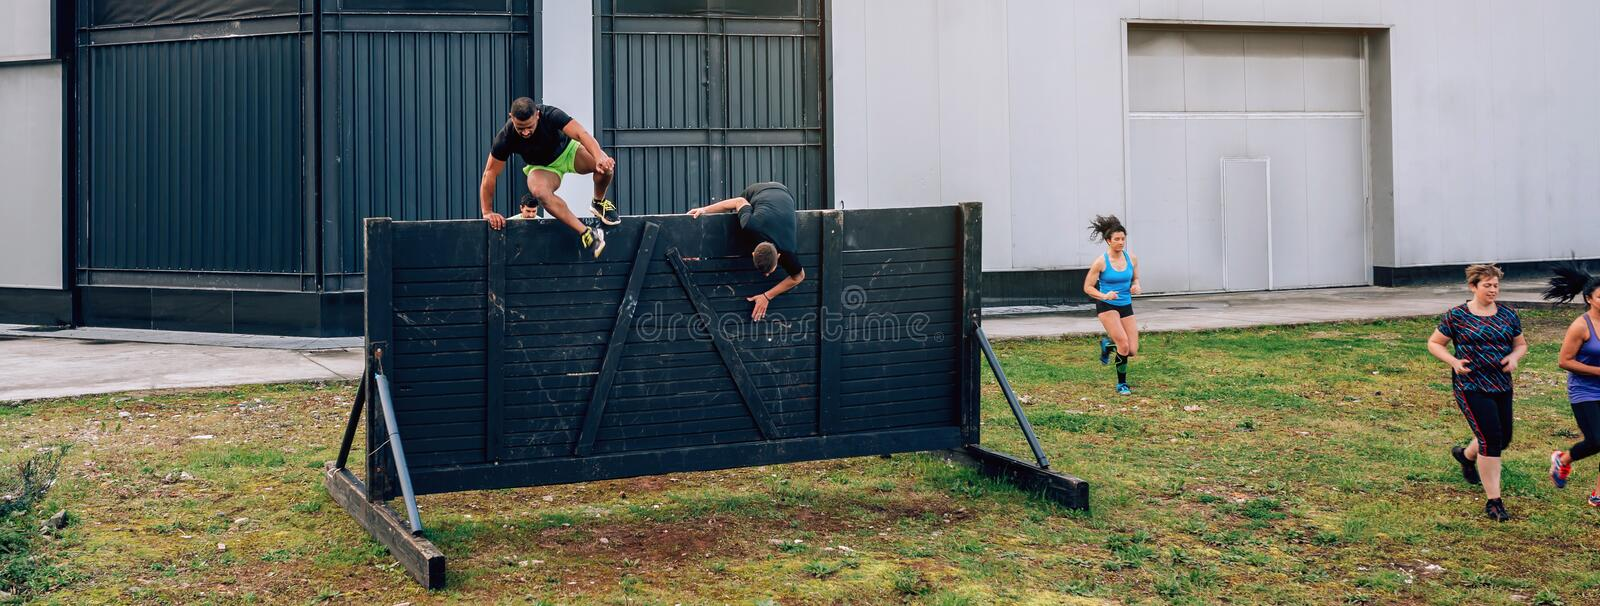 Participants in obstacle course running and climbing wall. Group of participants in an obstacle course running and climbing a wall stock photography